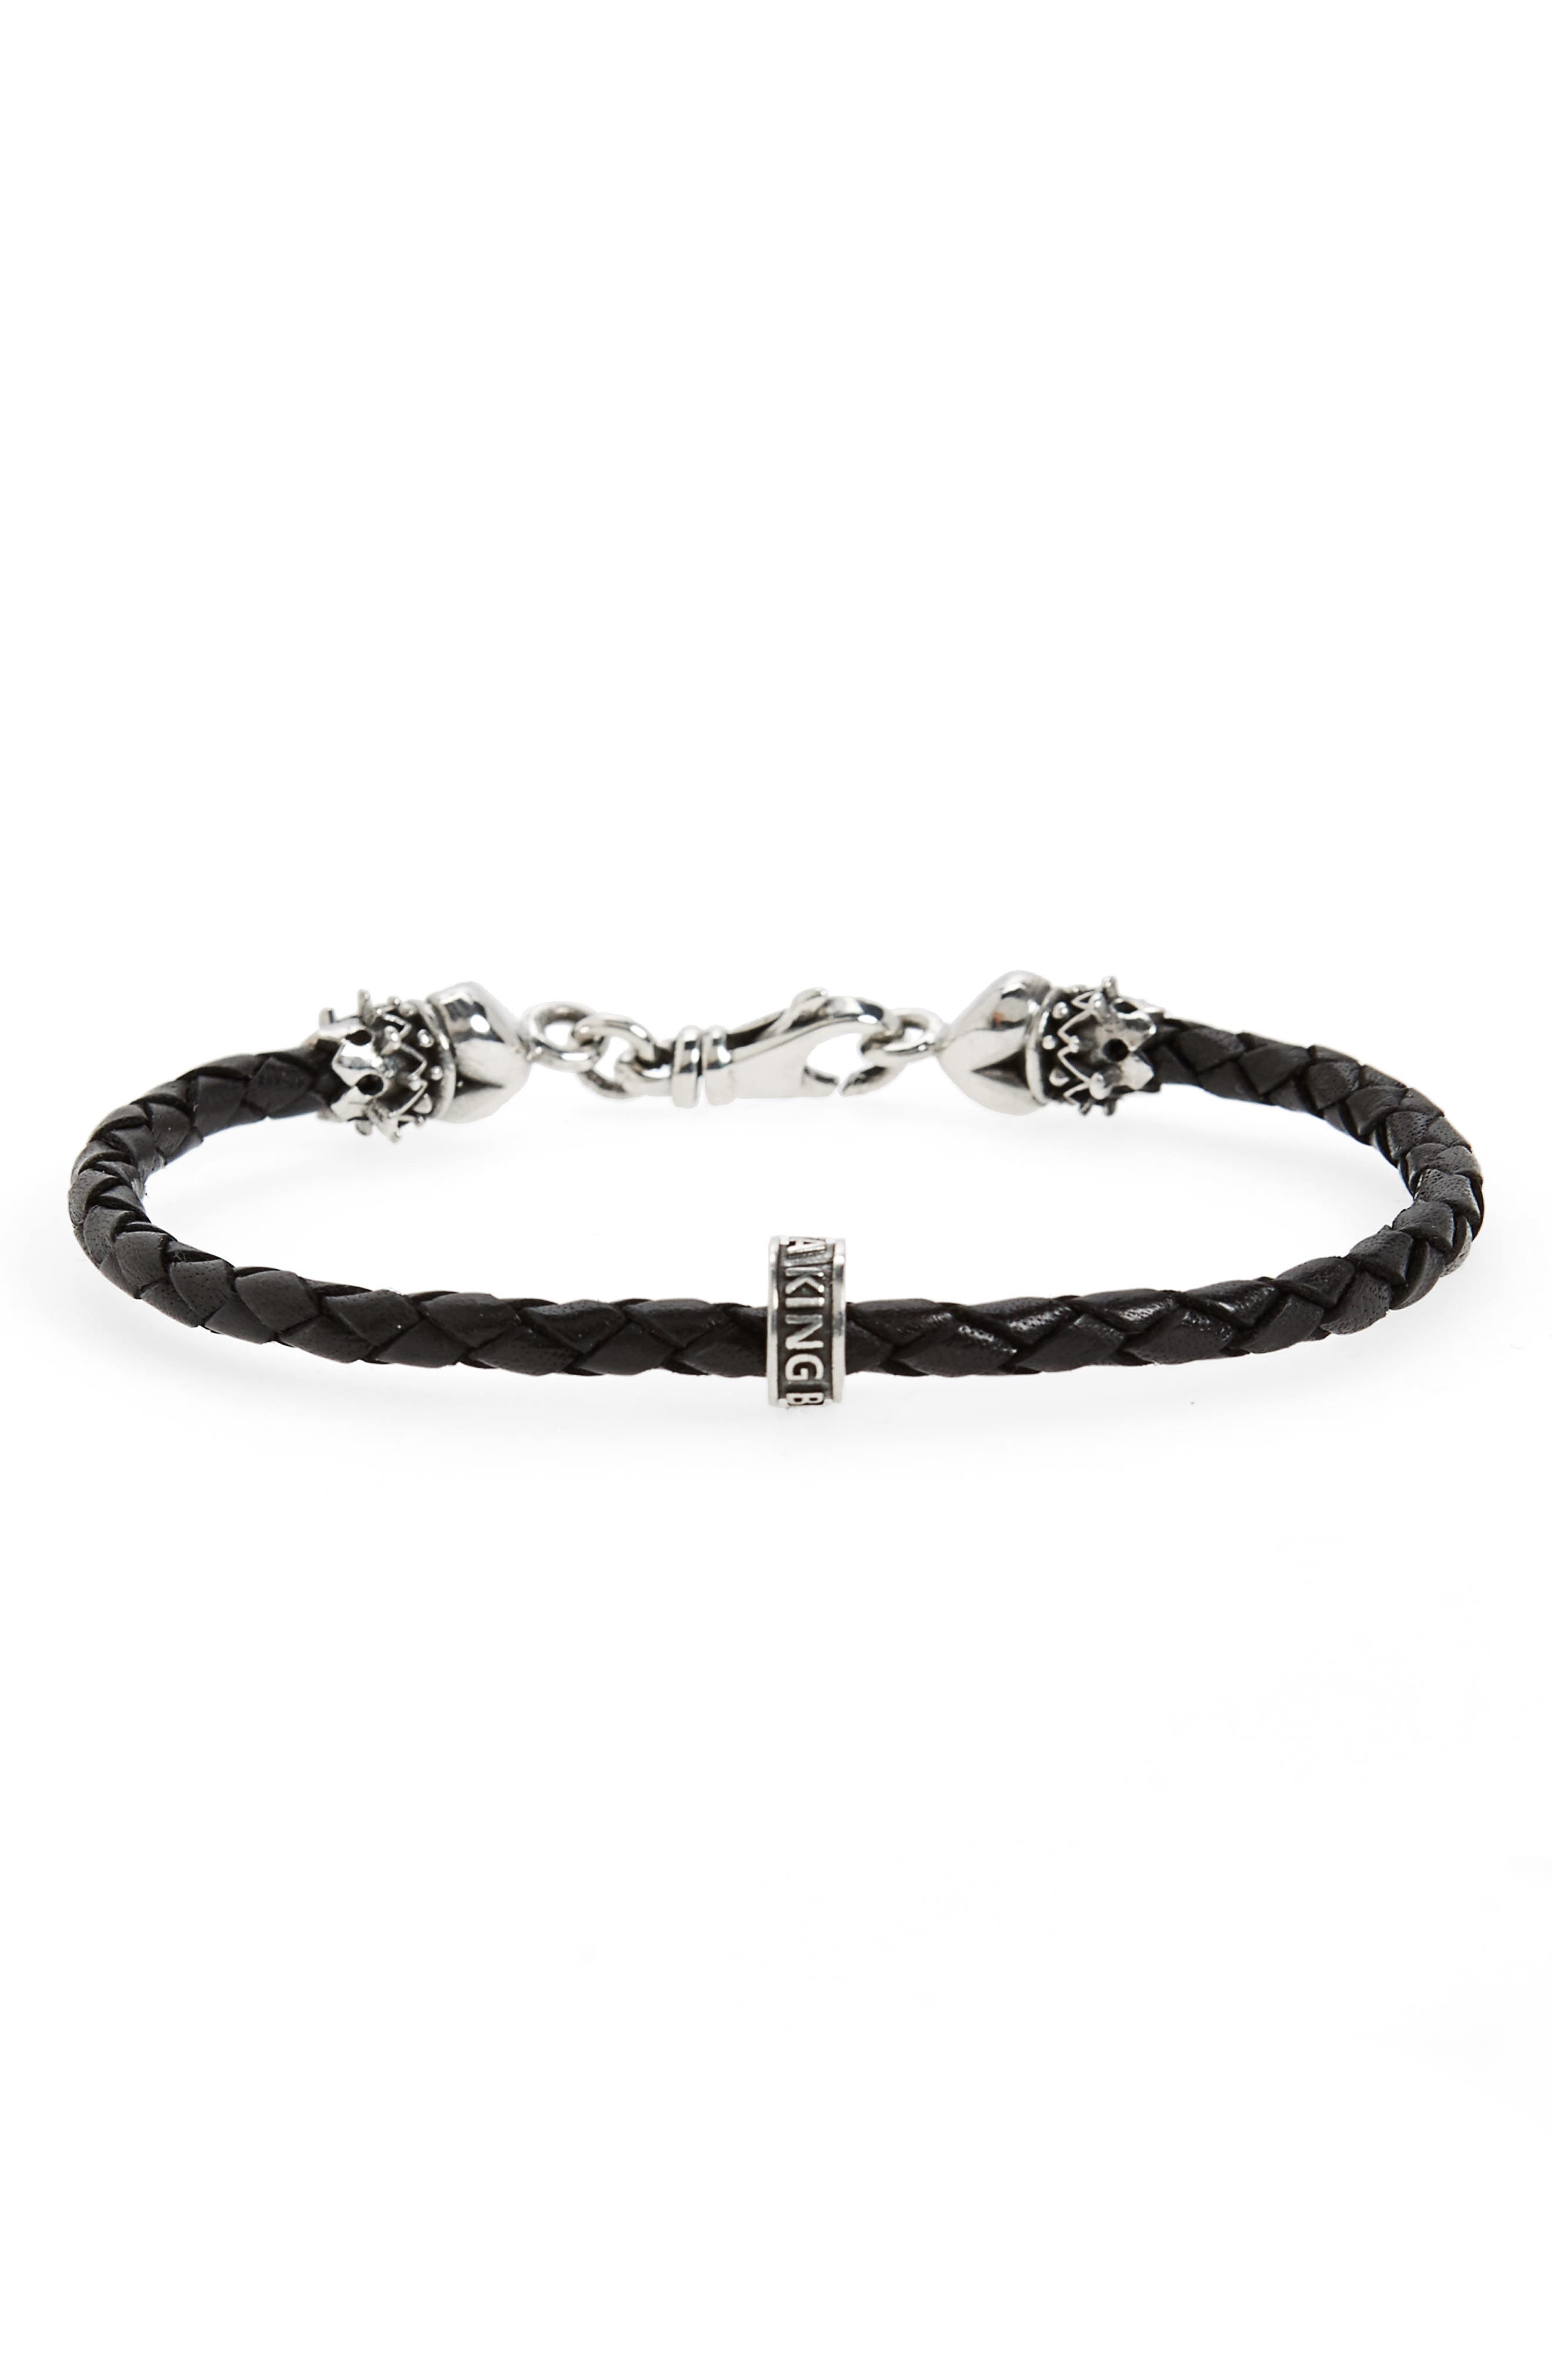 Braided Leather Bracelet,                             Main thumbnail 1, color,                             Silver/ Black